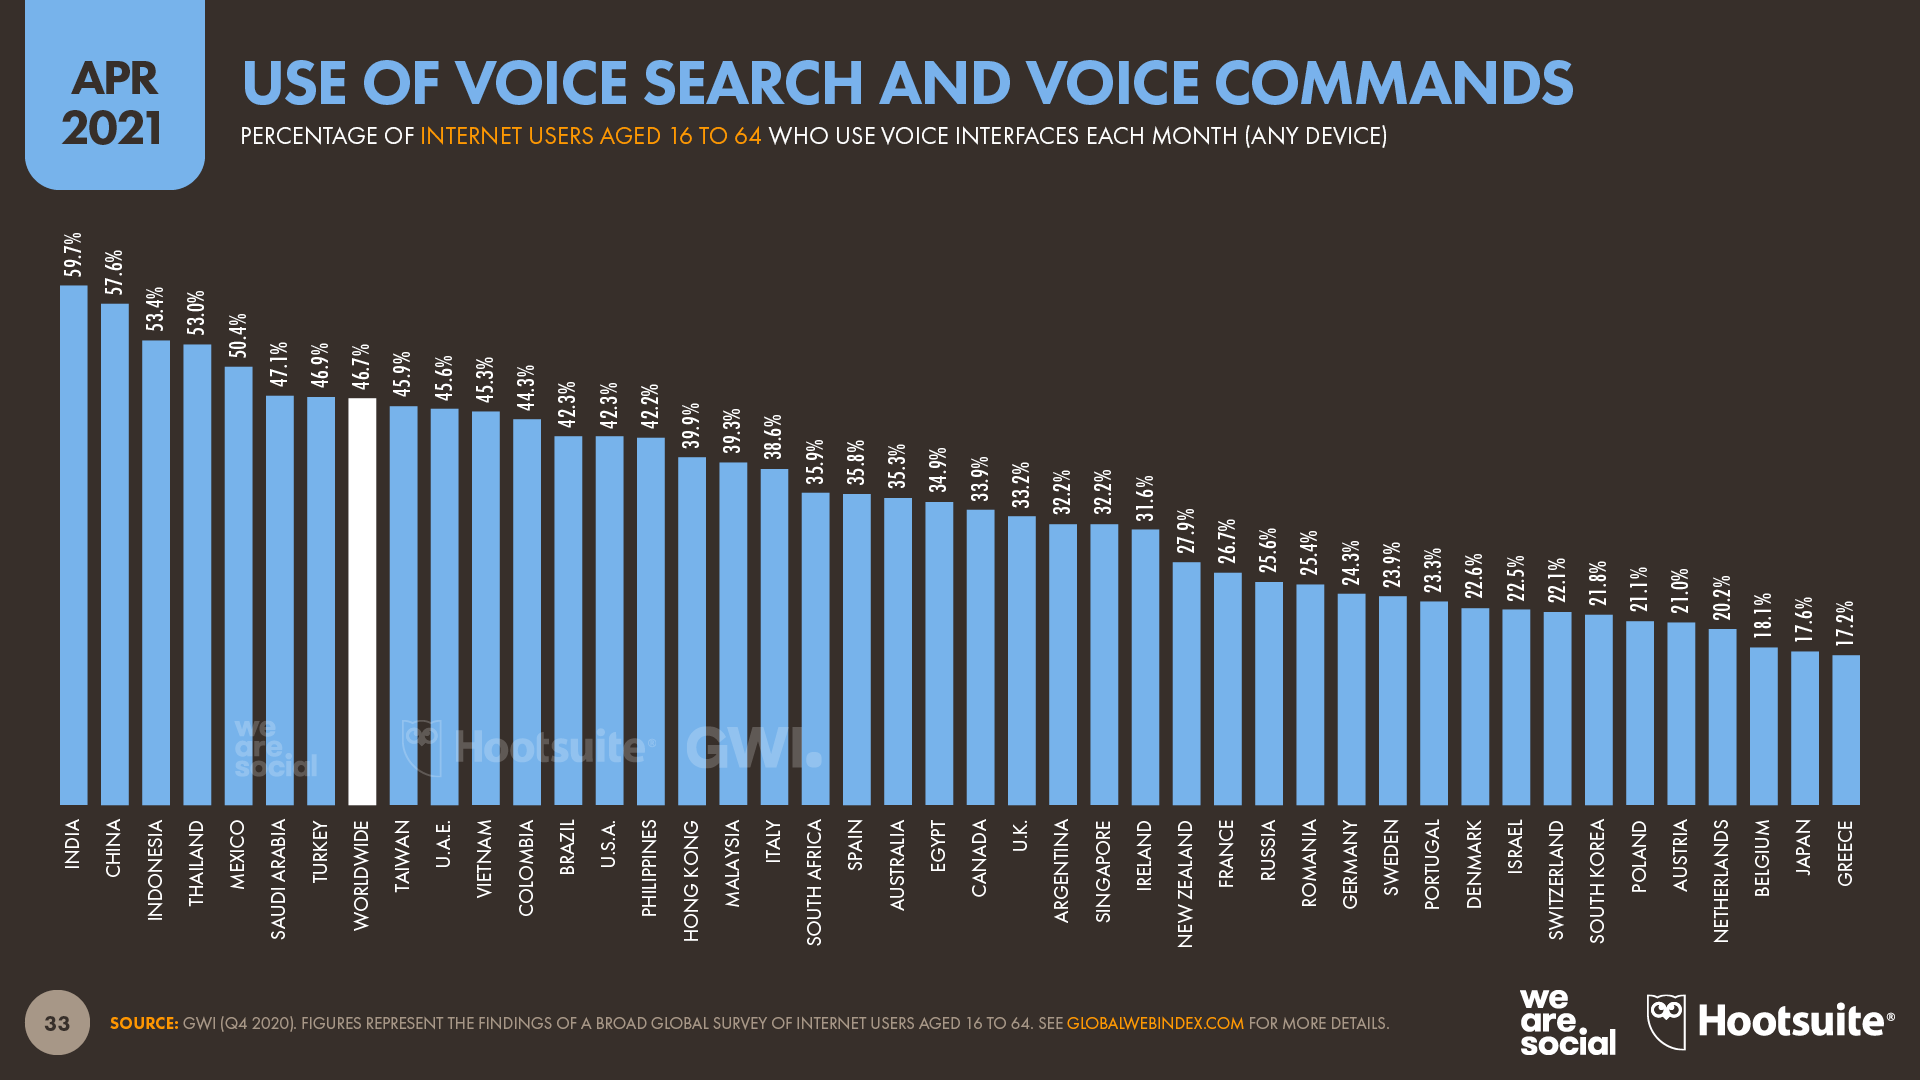 Use of Voice Search and Voice Commands April 2021 DataReportal